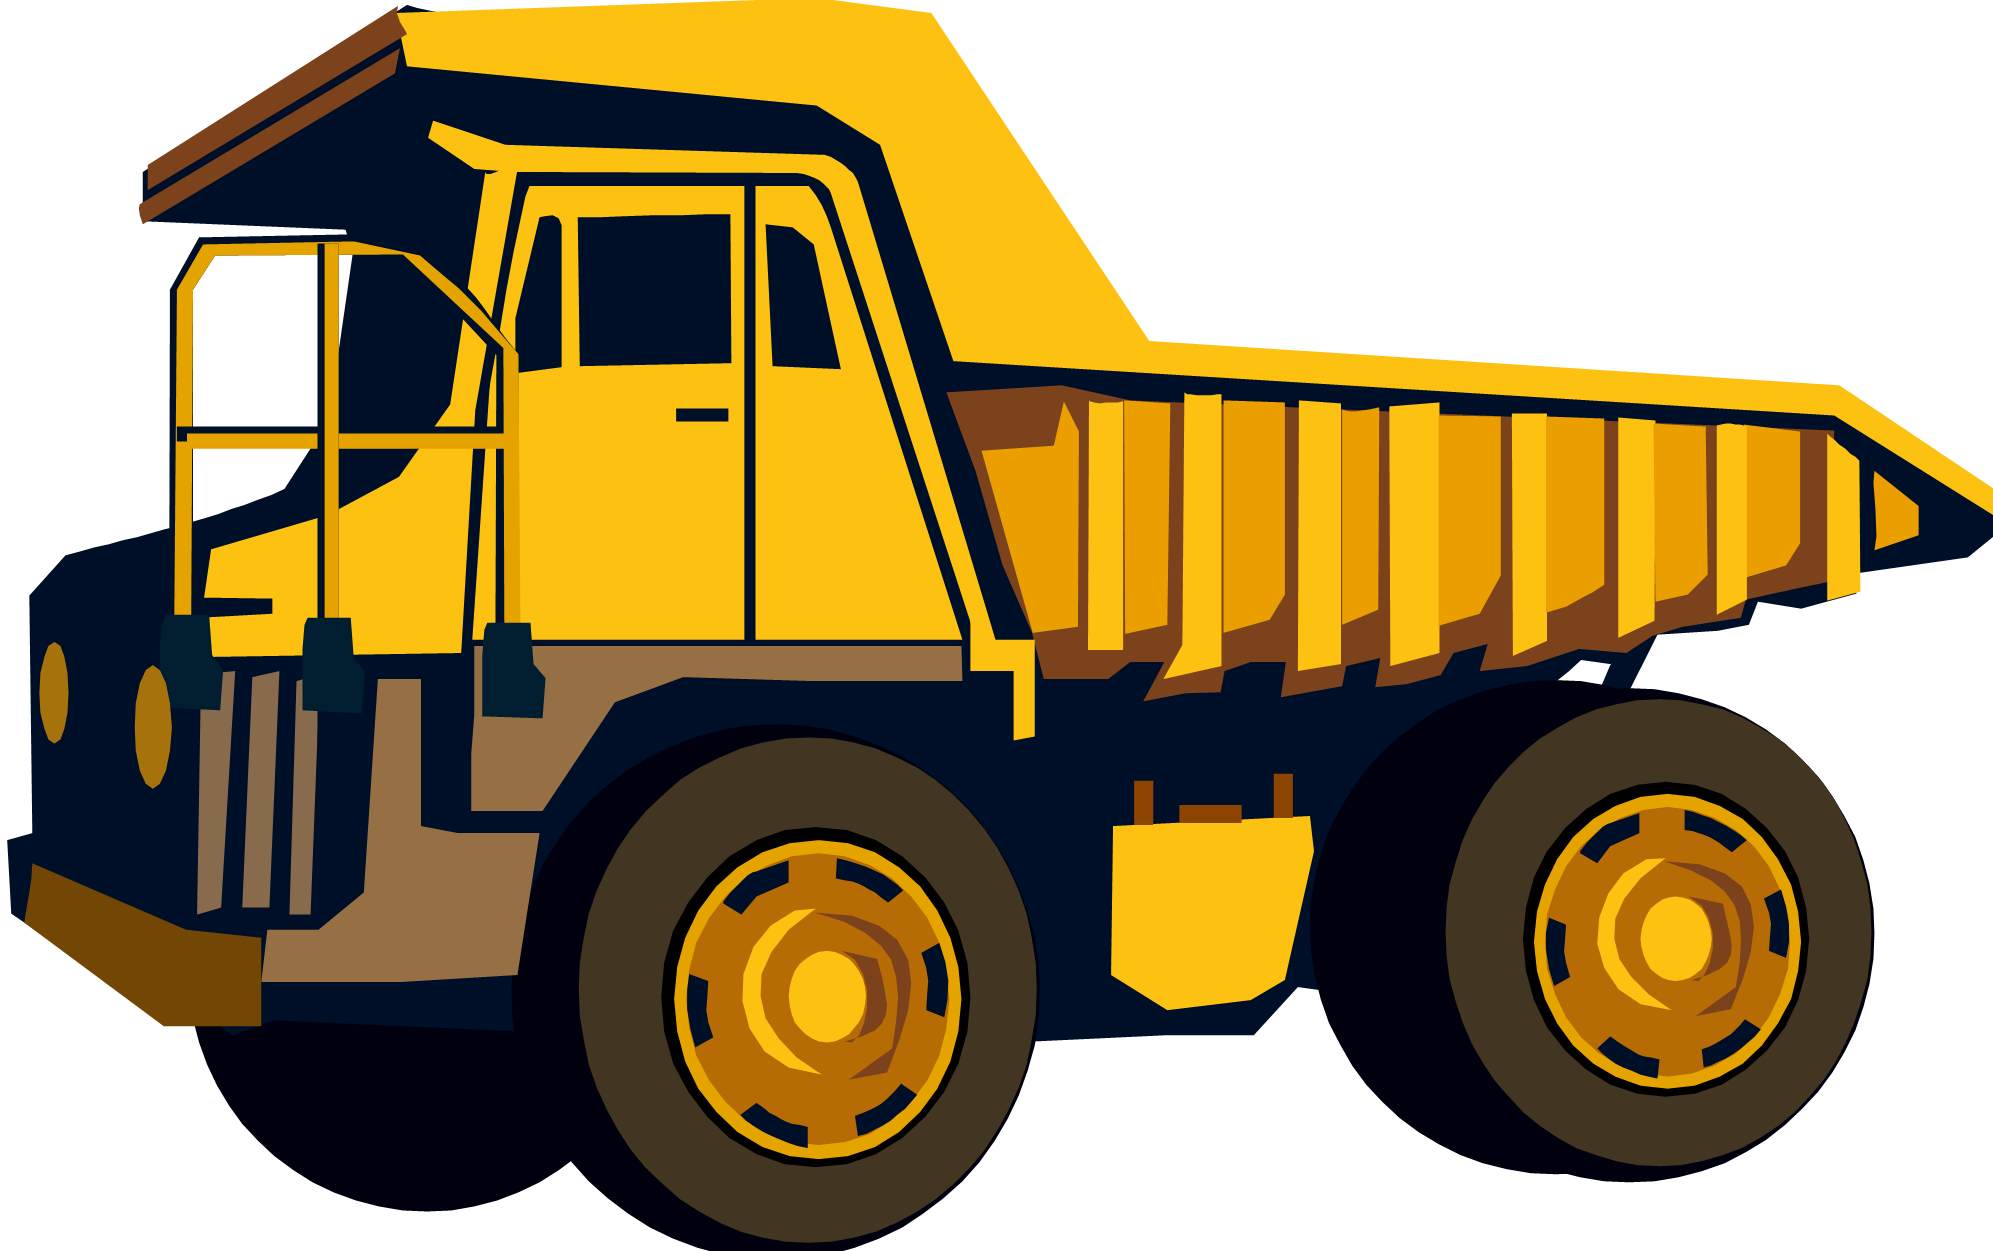 Yellow dump truck clipart banner freeuse Free Images Of Dump Trucks, Download Free Clip Art, Free Clip Art on ... banner freeuse